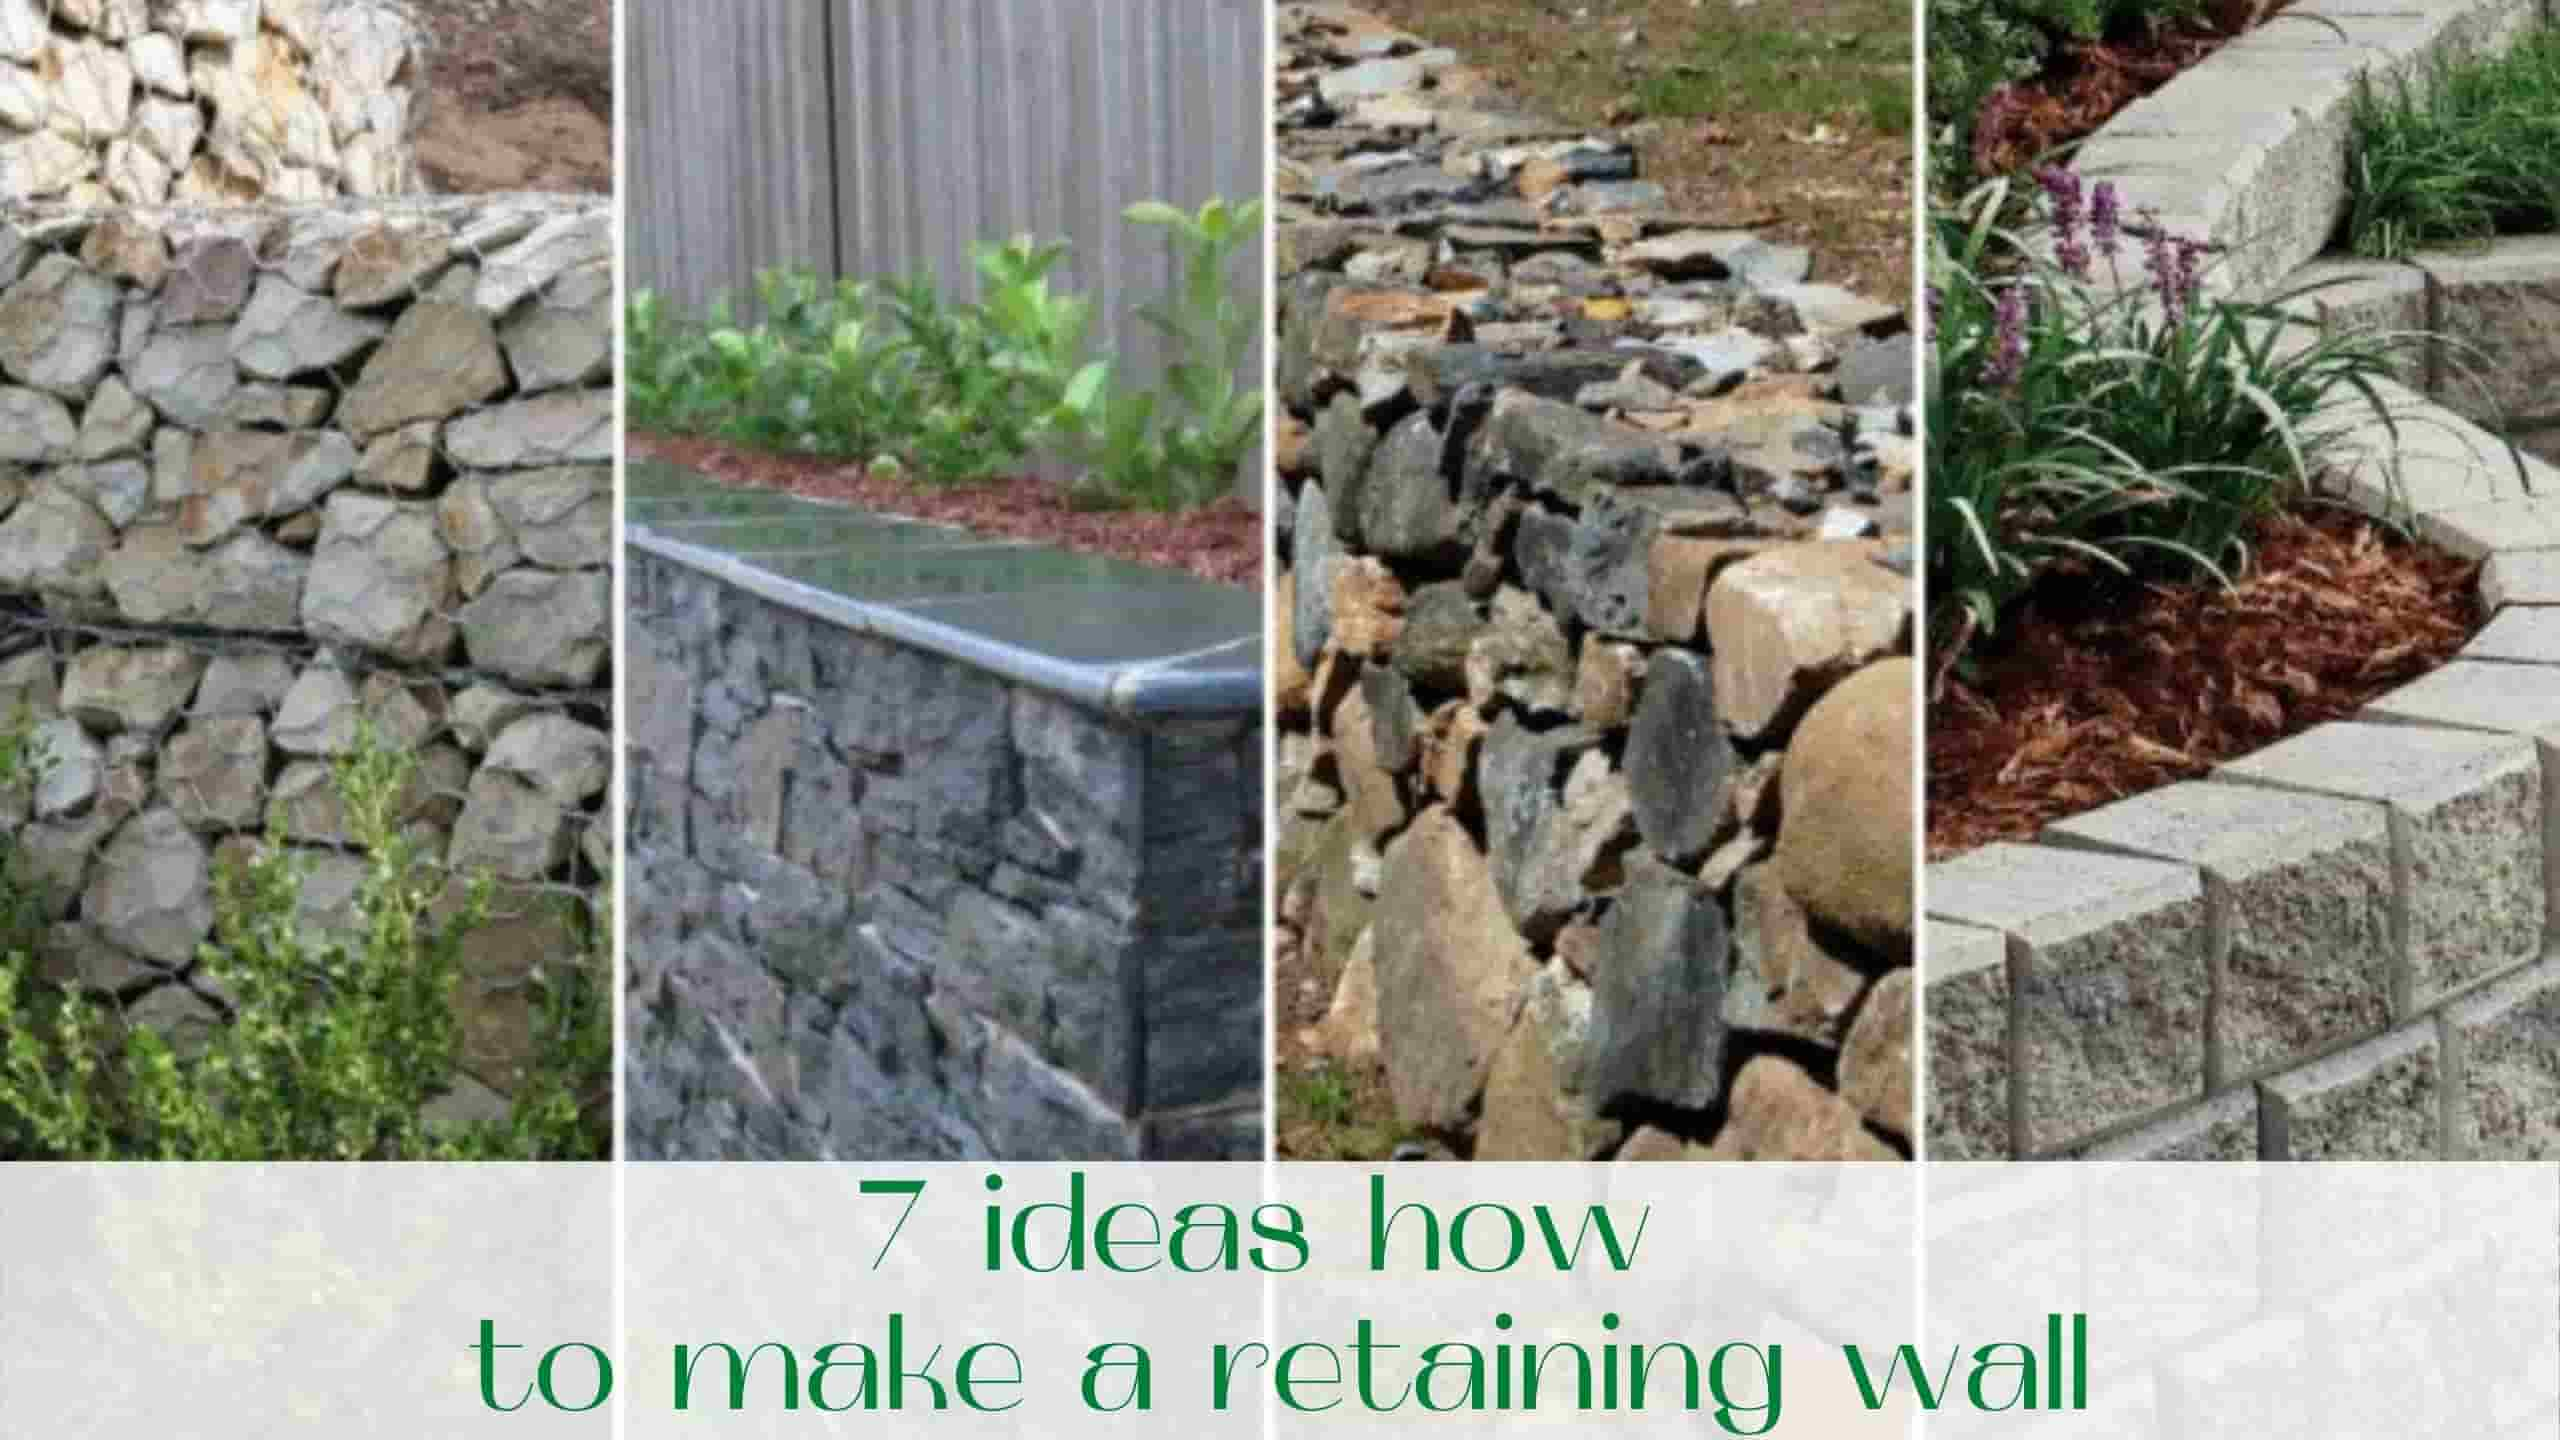 image-7-ideas-how-to-make-a-retaining-wall